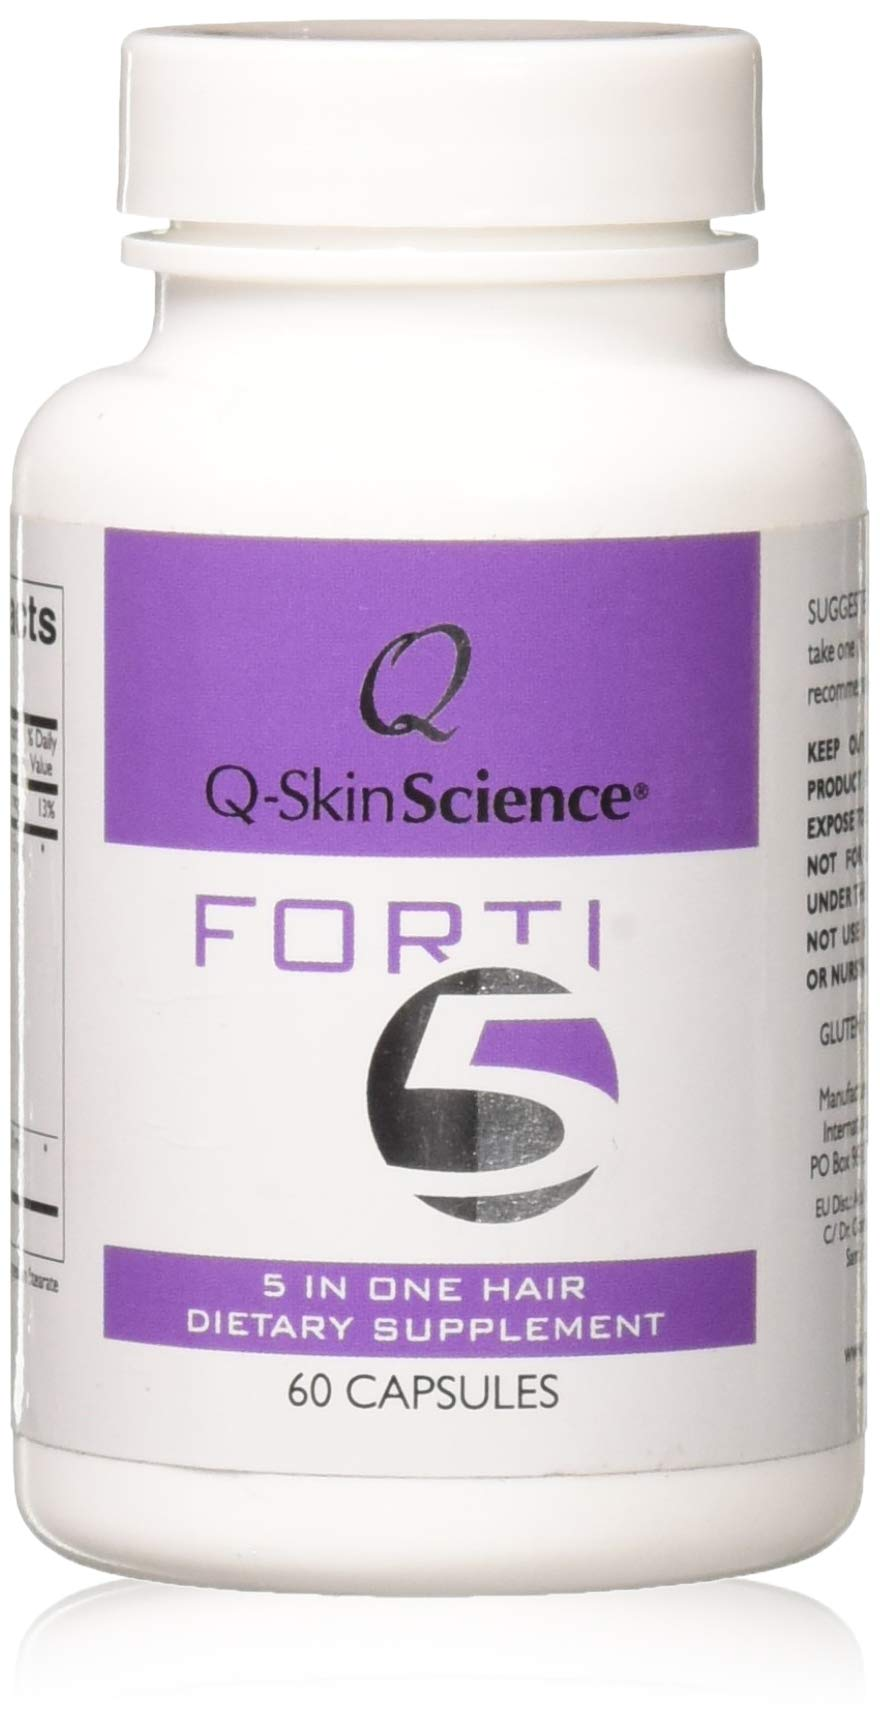 Forti5 - Hair Growth and Prevention of Hair Loss Dietary Supplement & Vitamins 5 Key Substances in 1 Product for faster growth of Thicker and Healthier Hair, by Quintessence - 60 caps, 1 m. supply